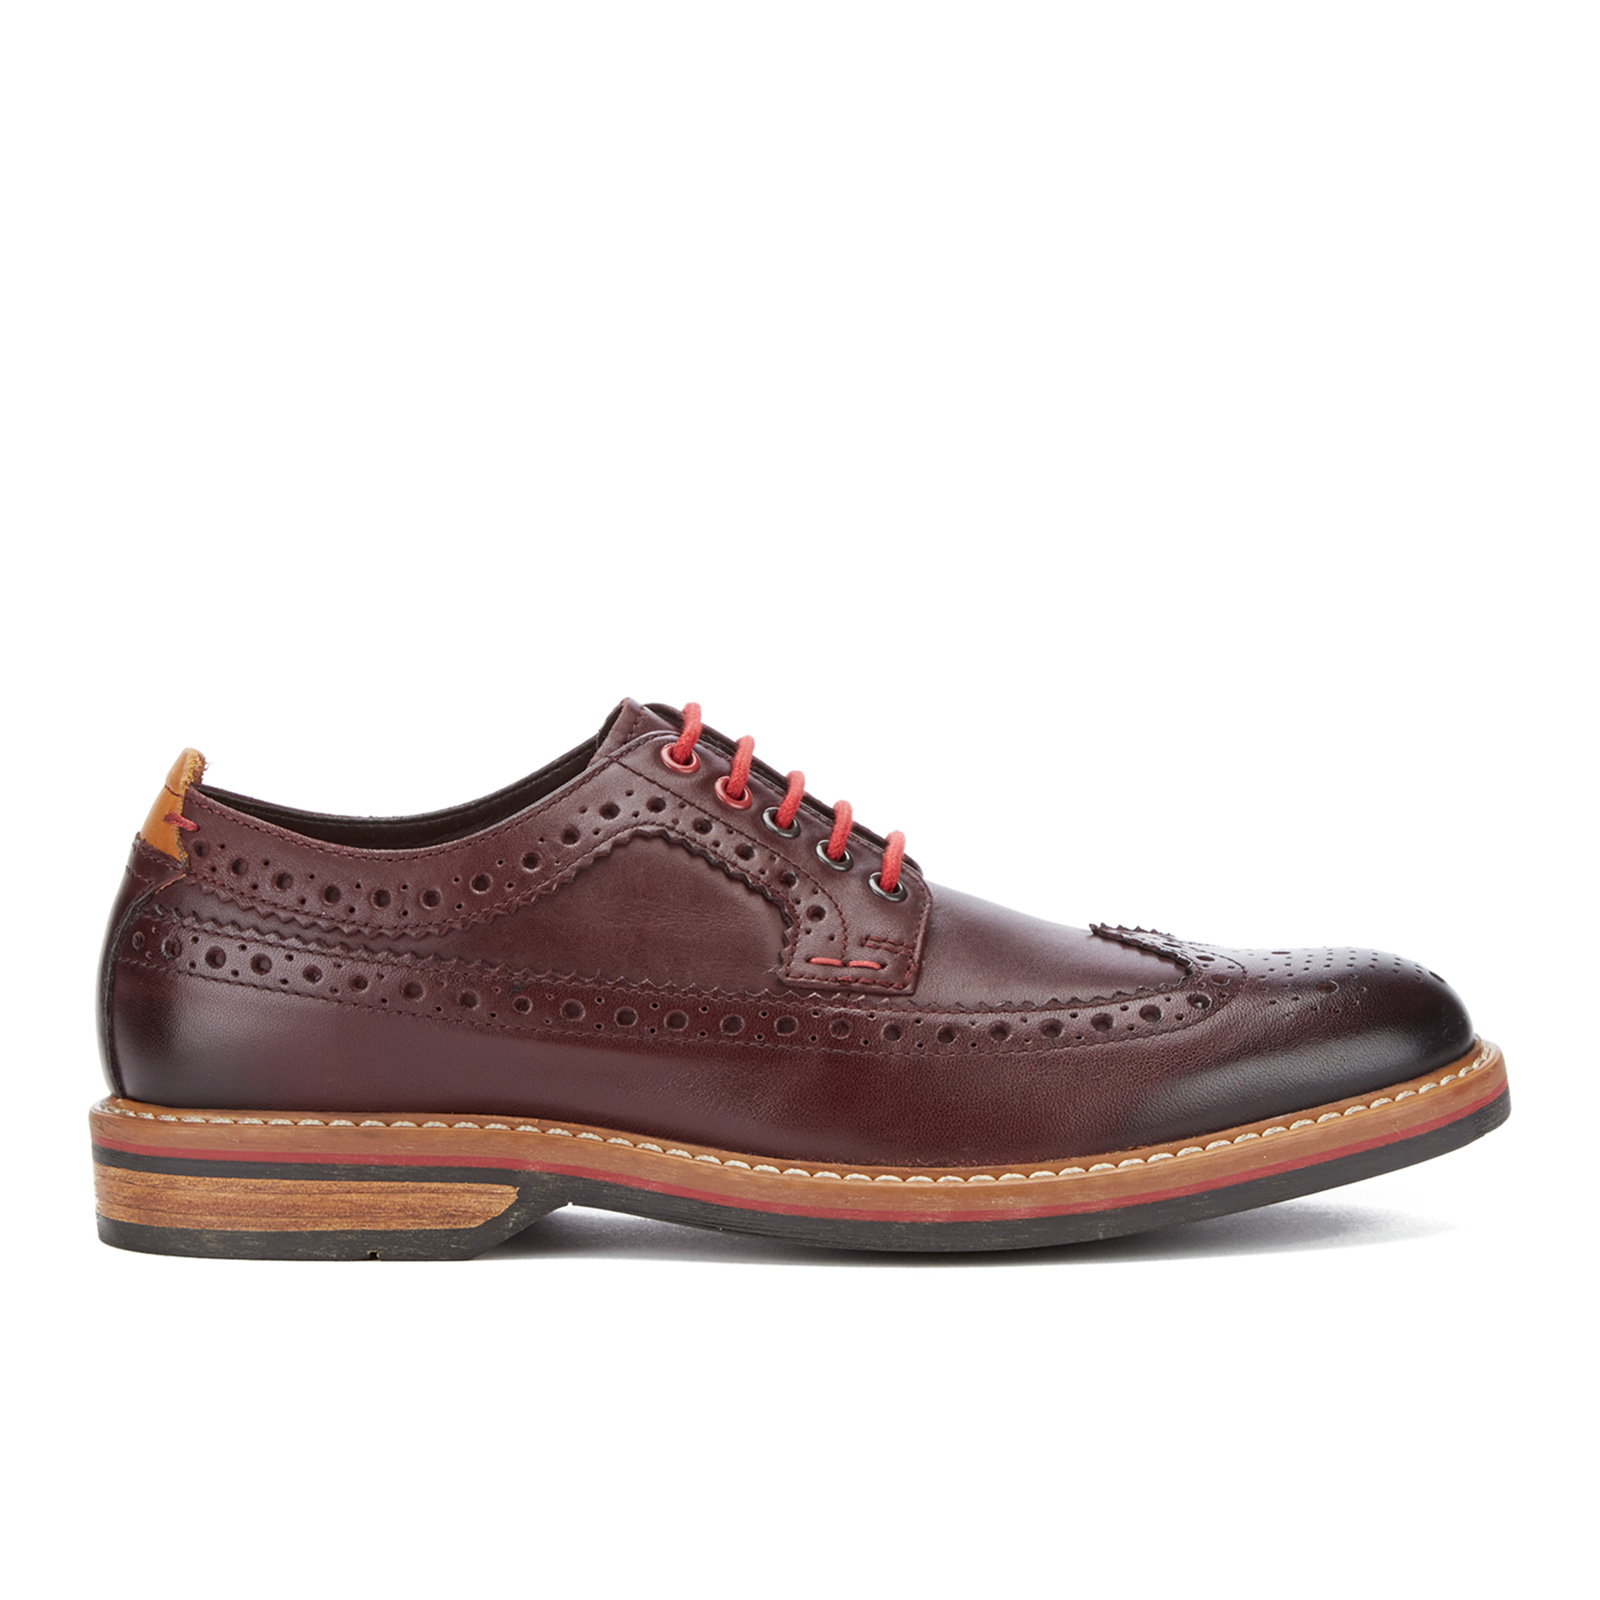 Clarks Men s Pitney Limit Leather Brogues - Chestnut  3c42ac18f93